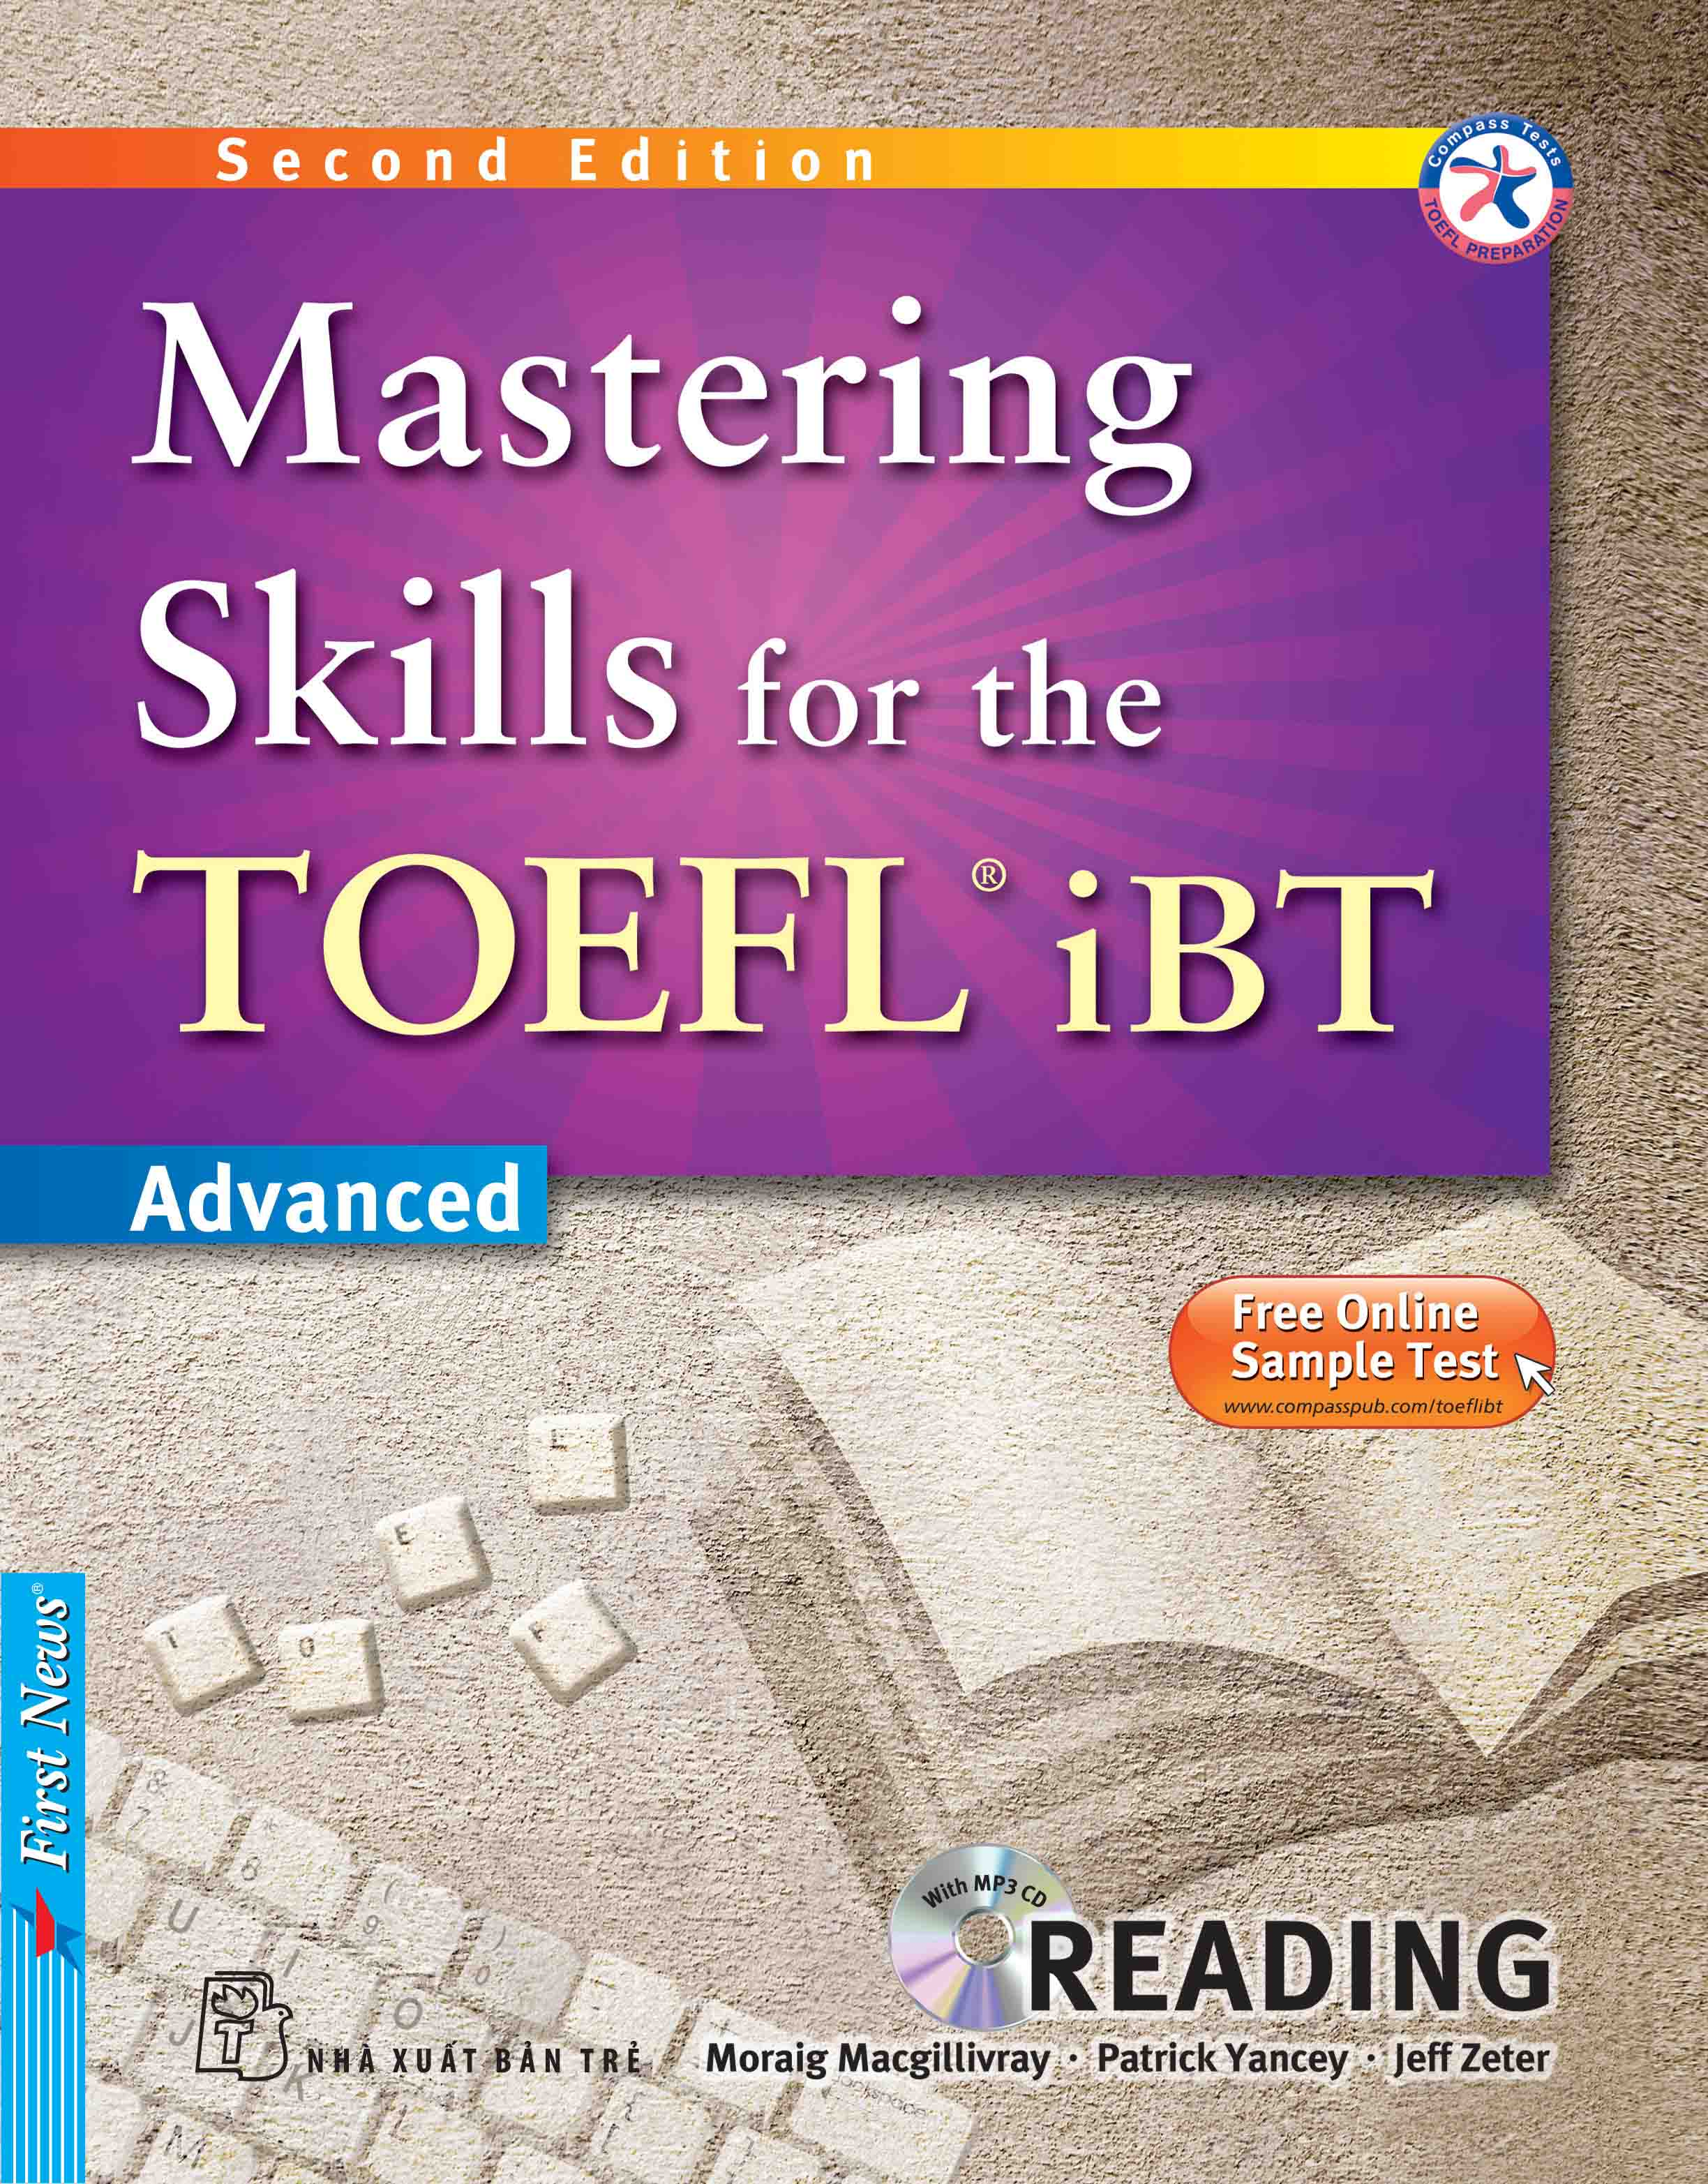 MASTERING SKILLS FOR THE TOEFL IBT - READING (Kèm CD Mp3)